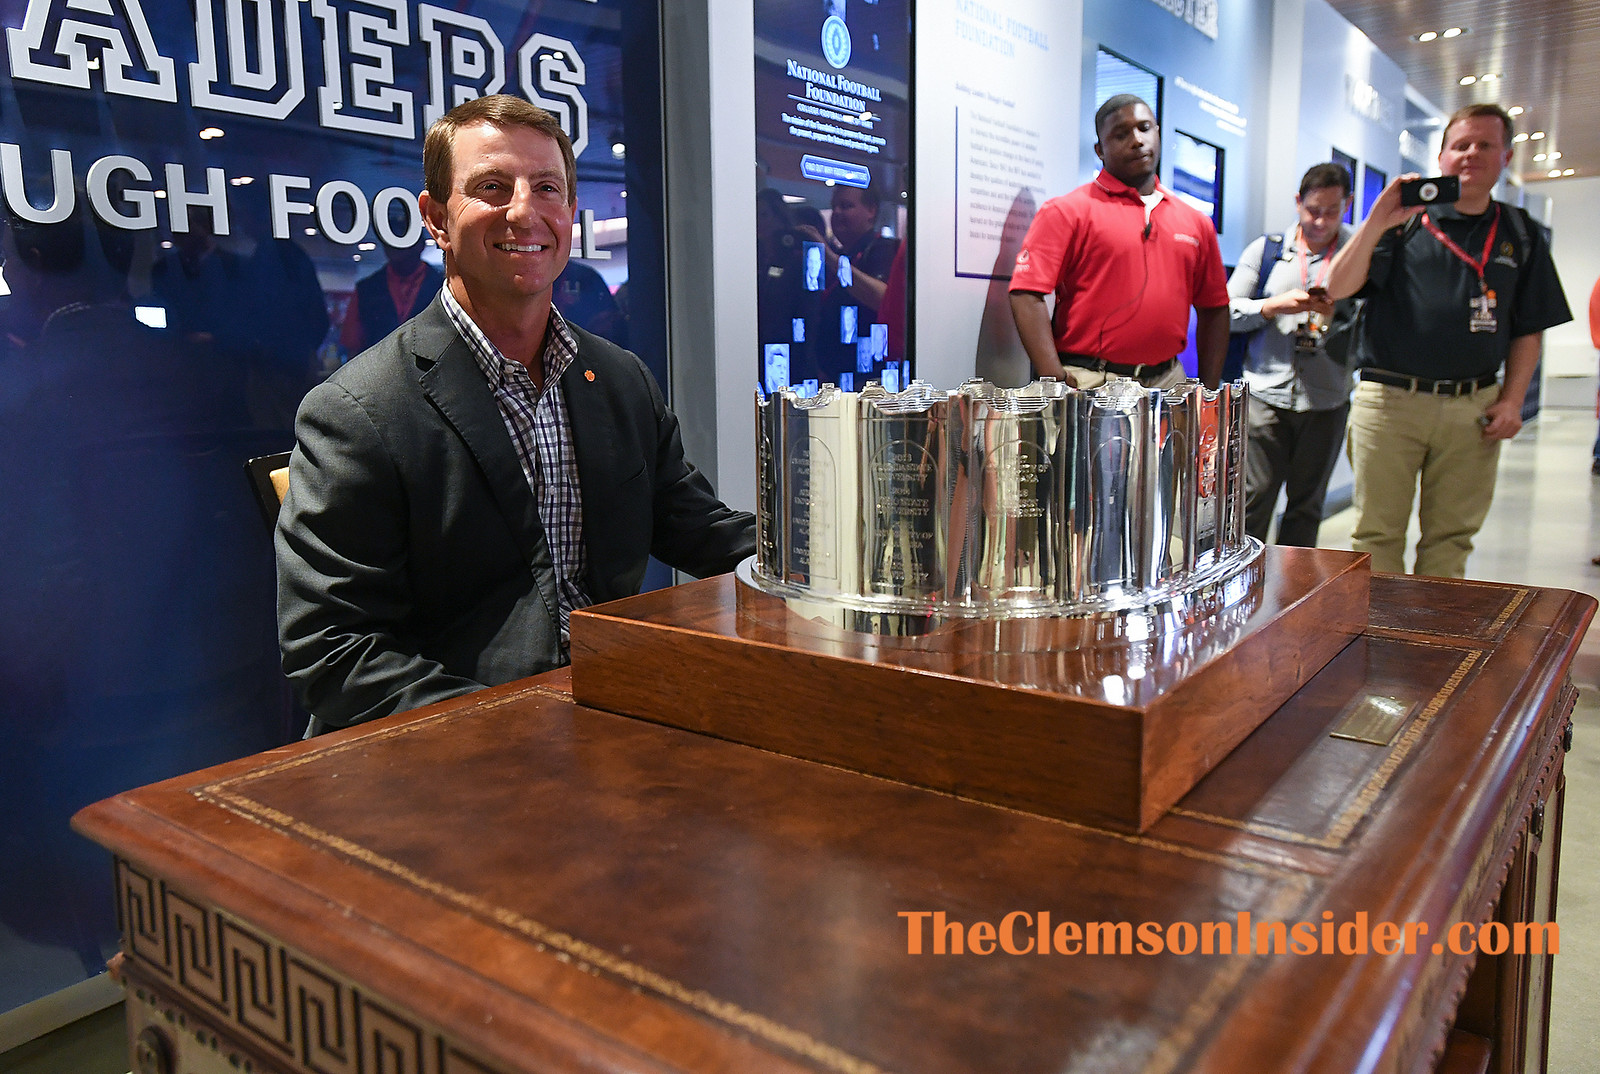 Clemson head coach Dabo Swinney sits at Gen. Douglas MacArthur's desk after accepting the NFF MacArthur Bowl, the organization's national championship trophy for the NCAA Division I - Football Bowl Subdivision, during a ceremony at the Chick-fil-A College Football Hall of Fame in Atlanta Wednesday, April 24, 2019. Bart Boatwright/The Clemson Insider